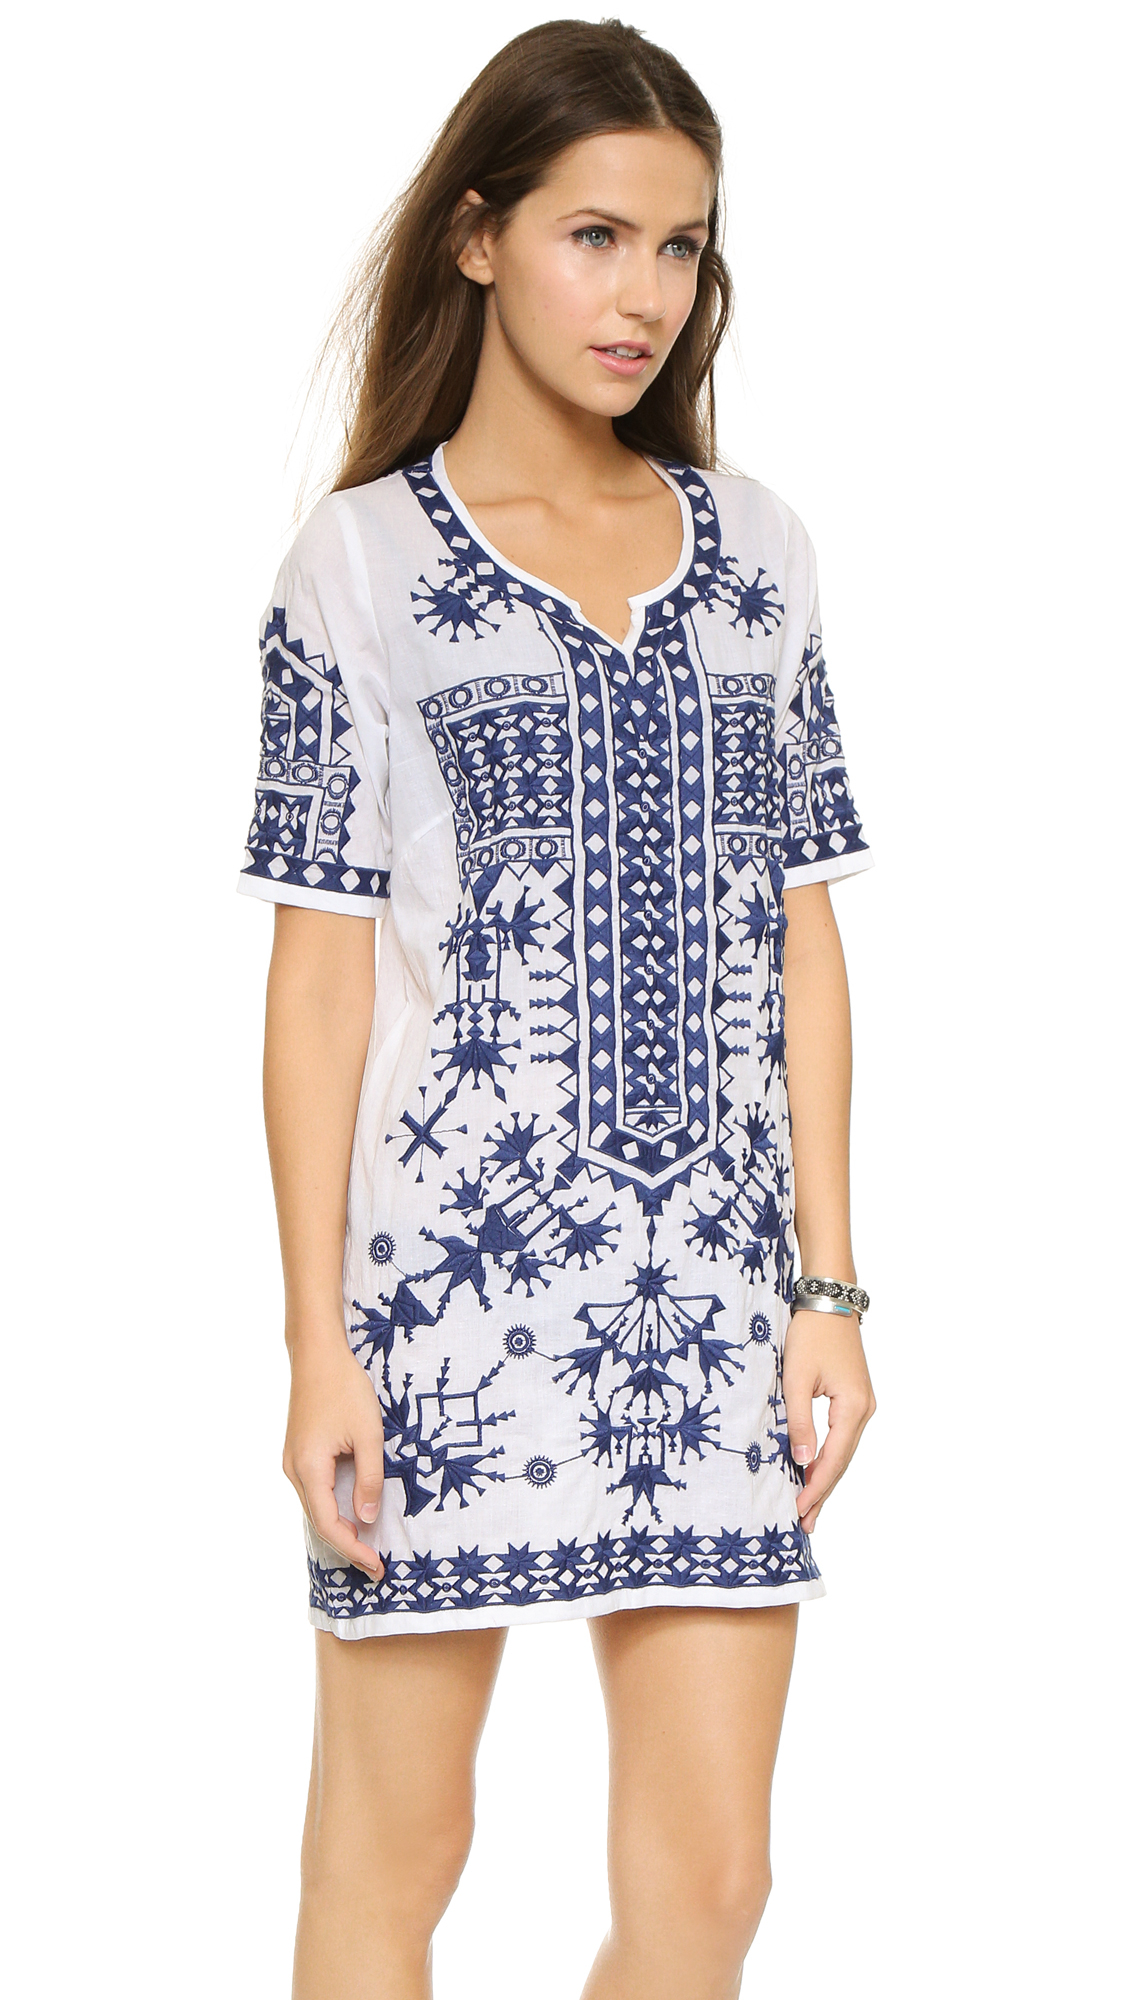 Basta surf keramas embroidered beach dress white navy